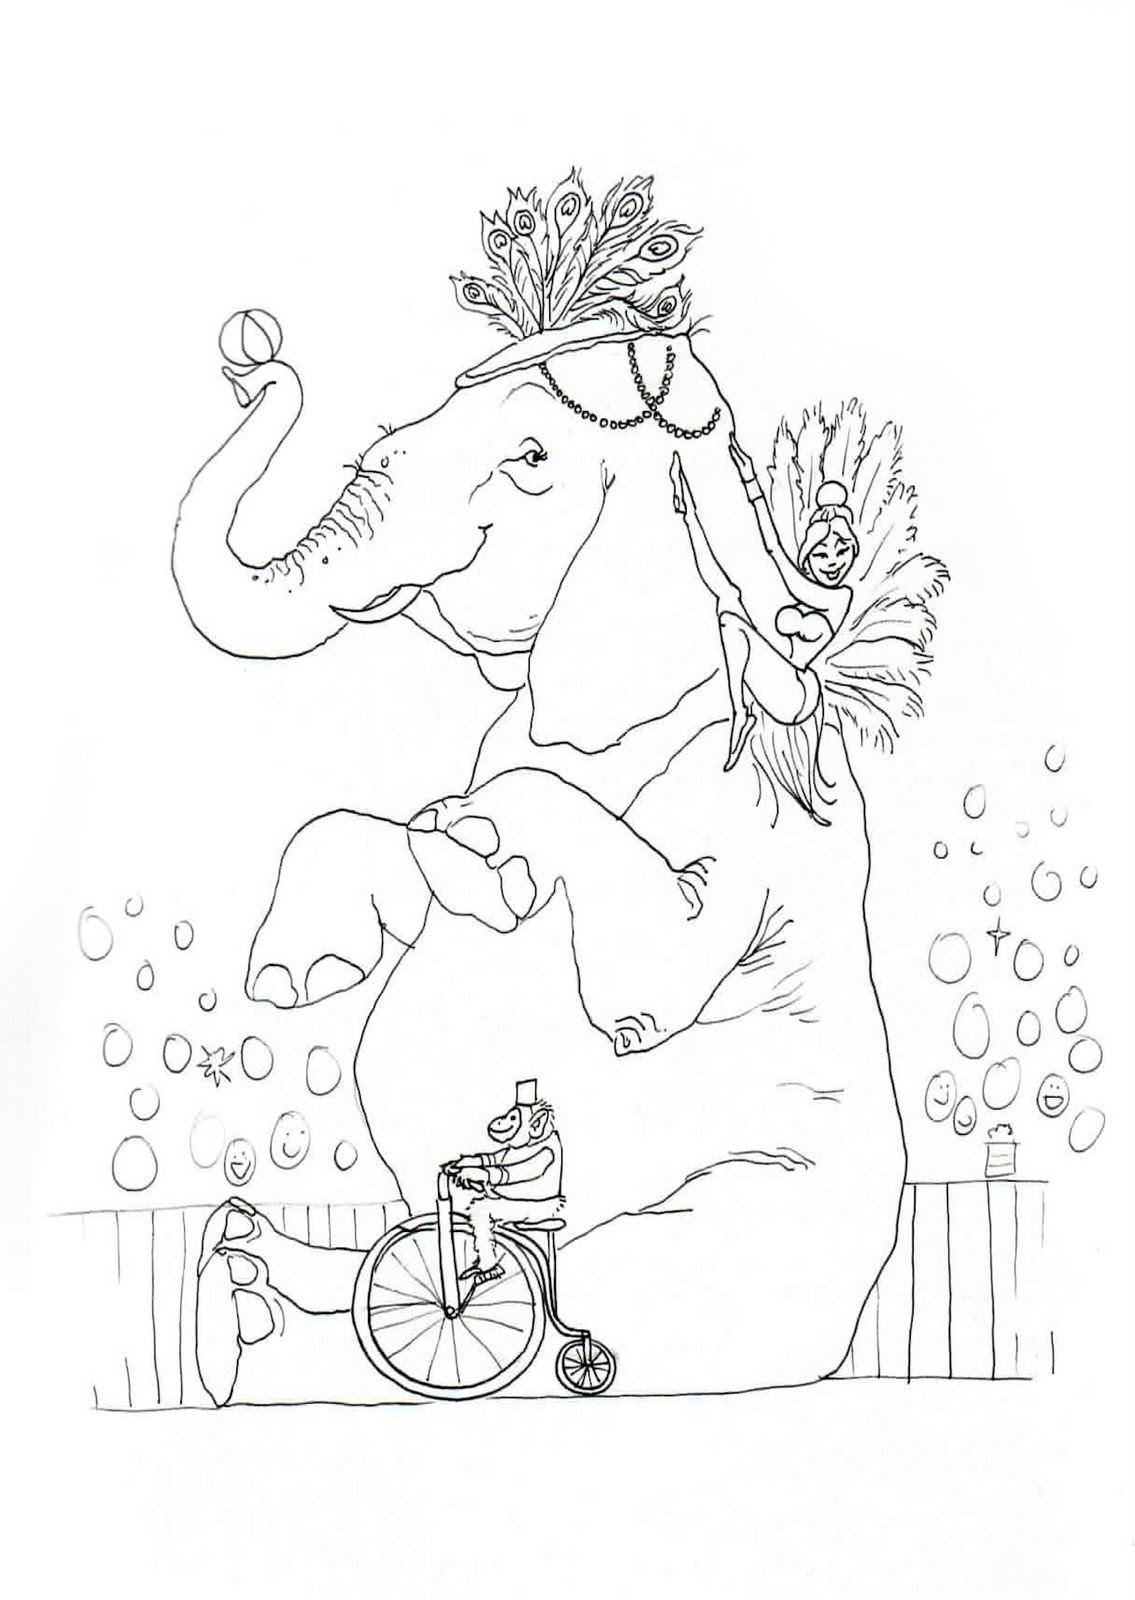 wheres waldo coloring pages - photo#13